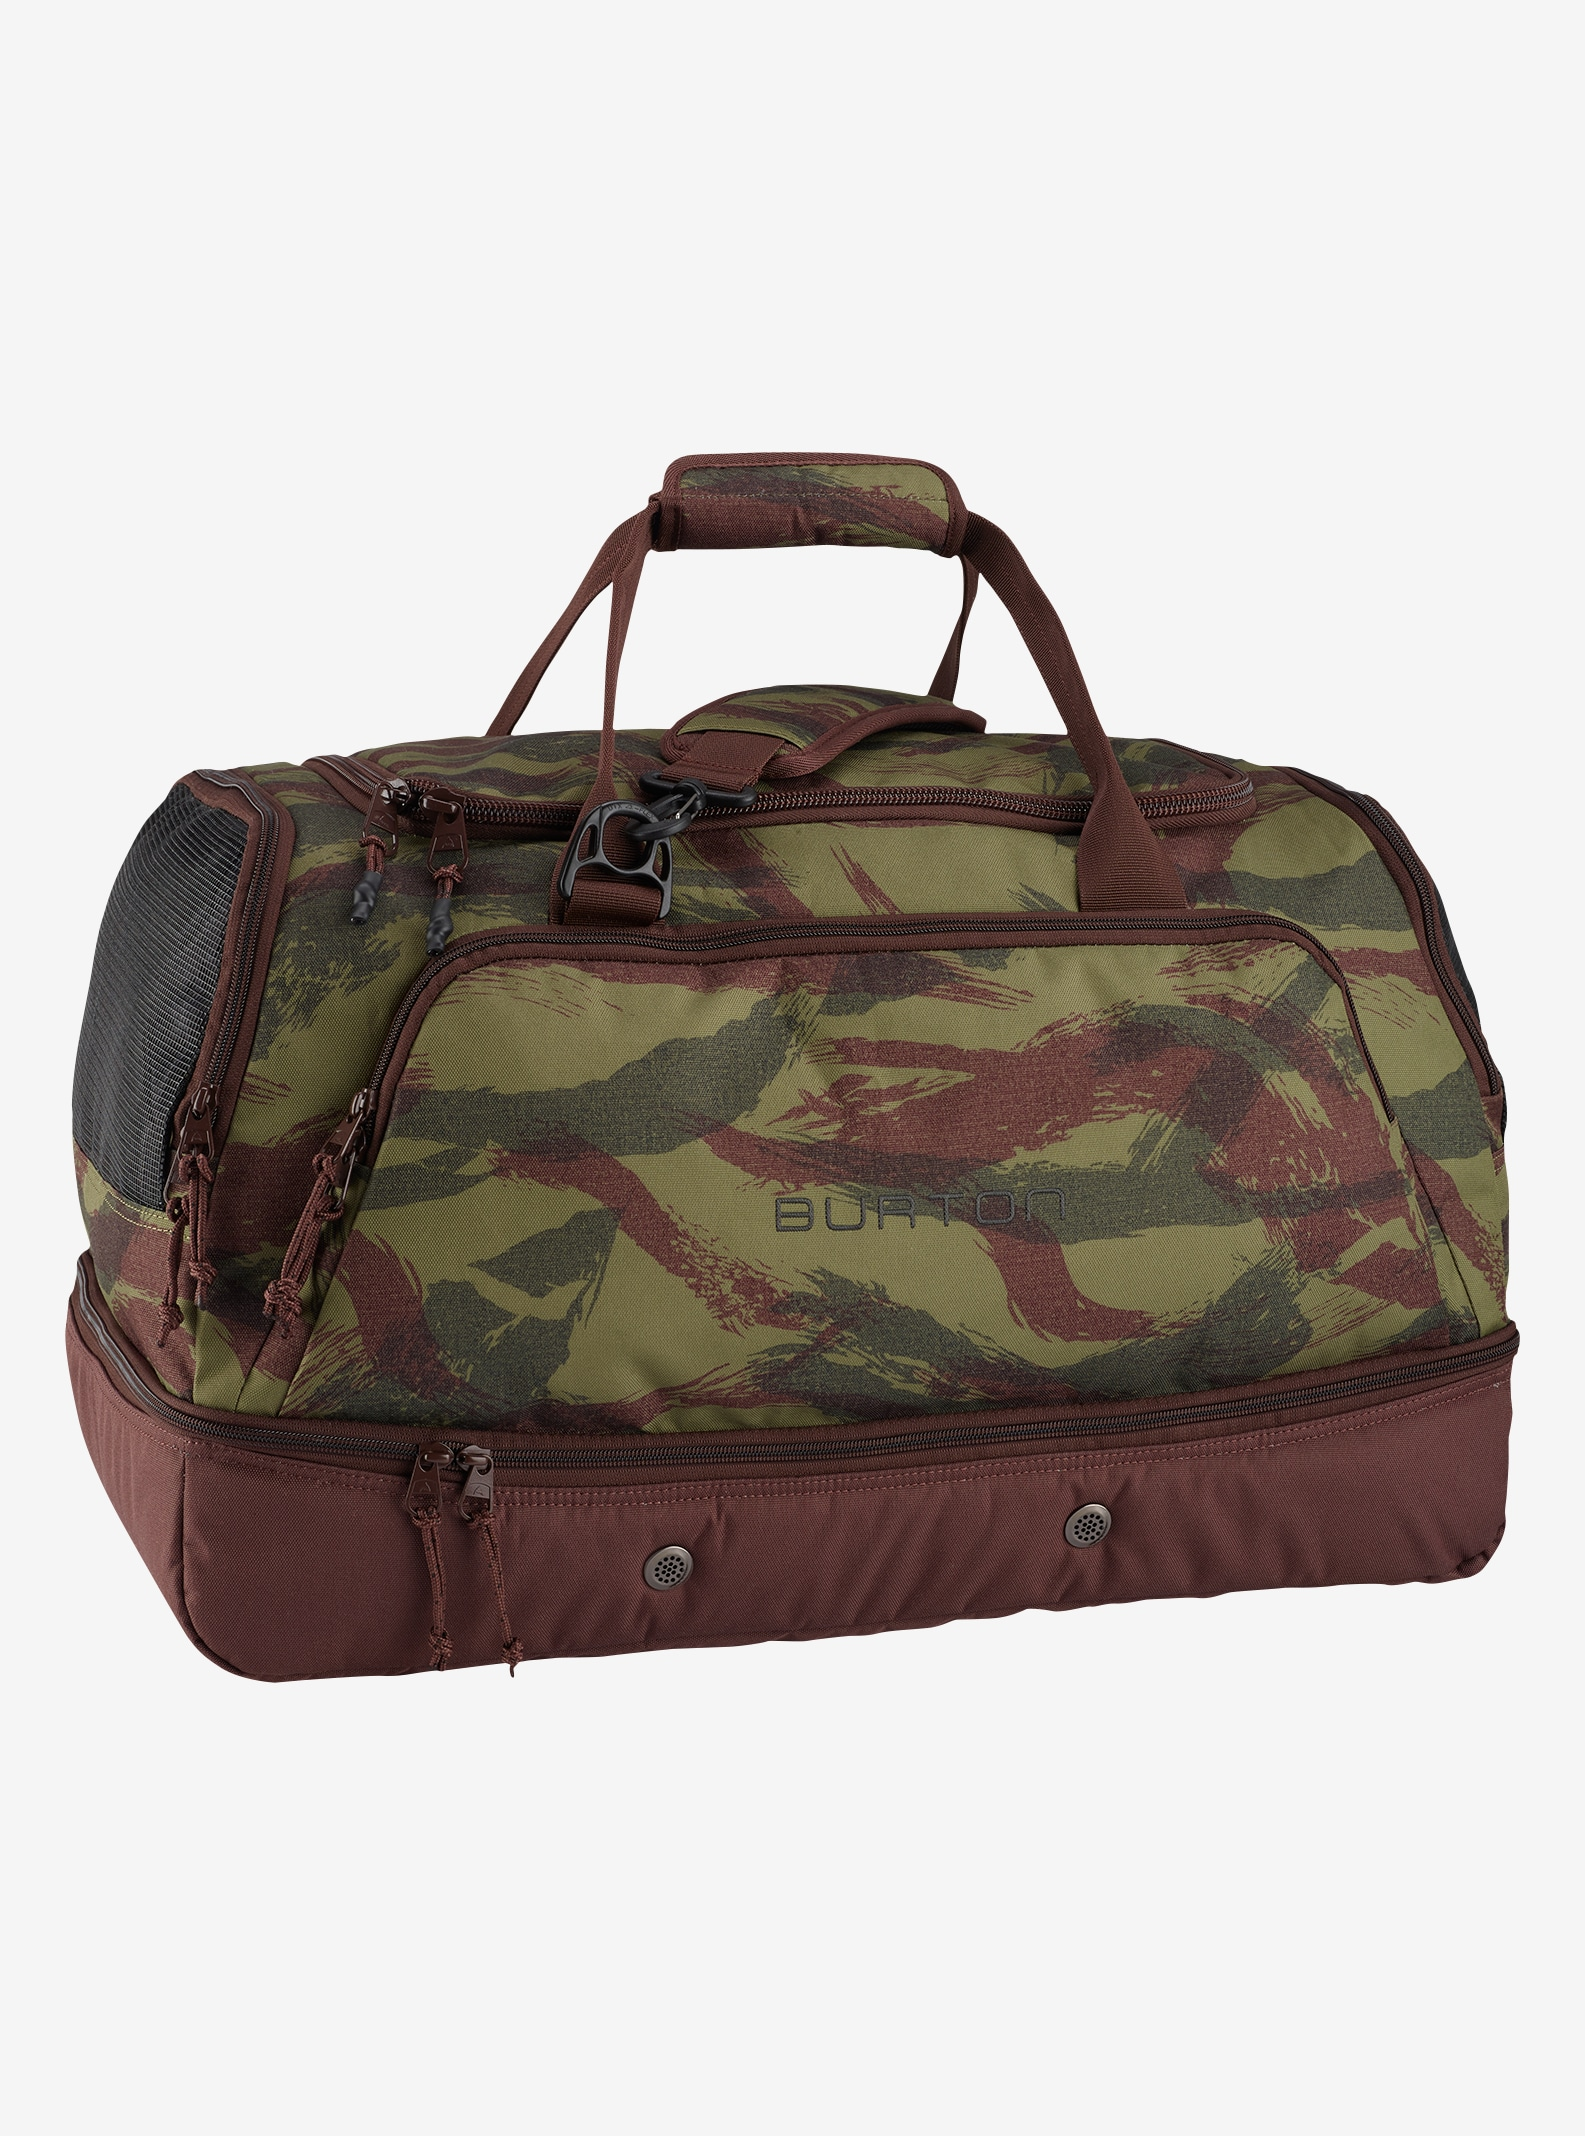 Burton Rider's Bag 2.0 shown in Brushstroke Camo Print